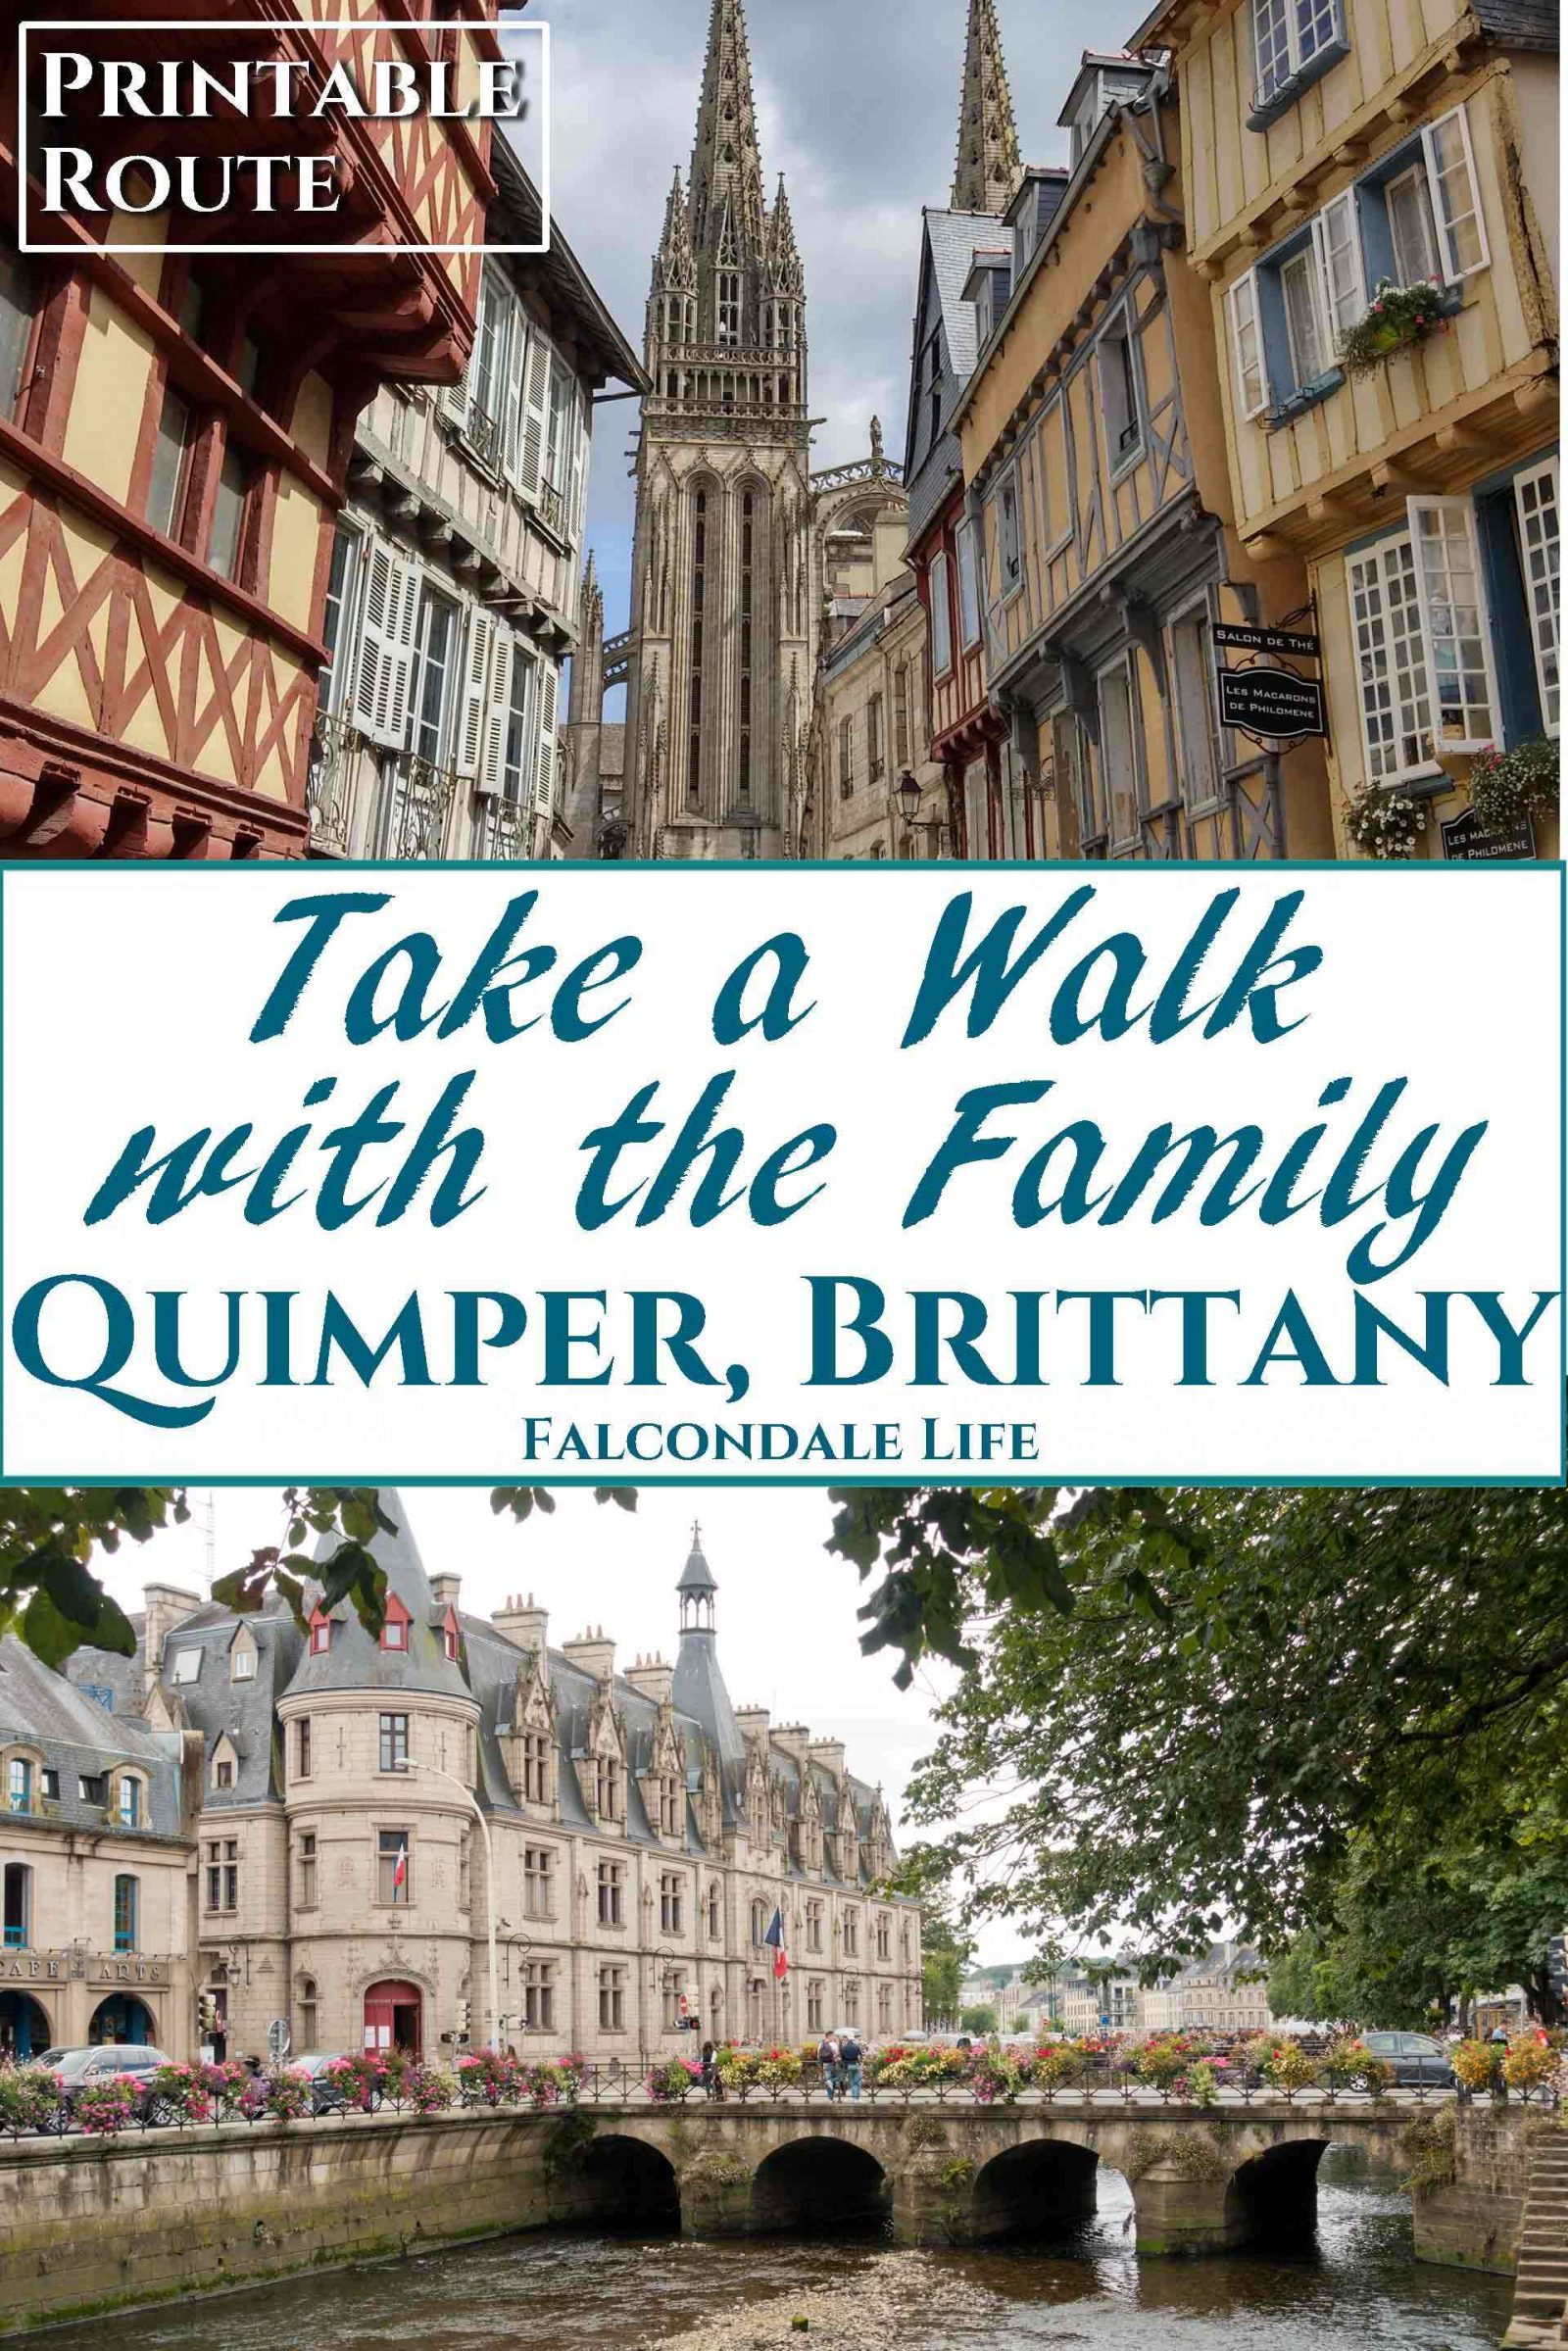 Take a Walk with the Family Through Quimper, Brittany